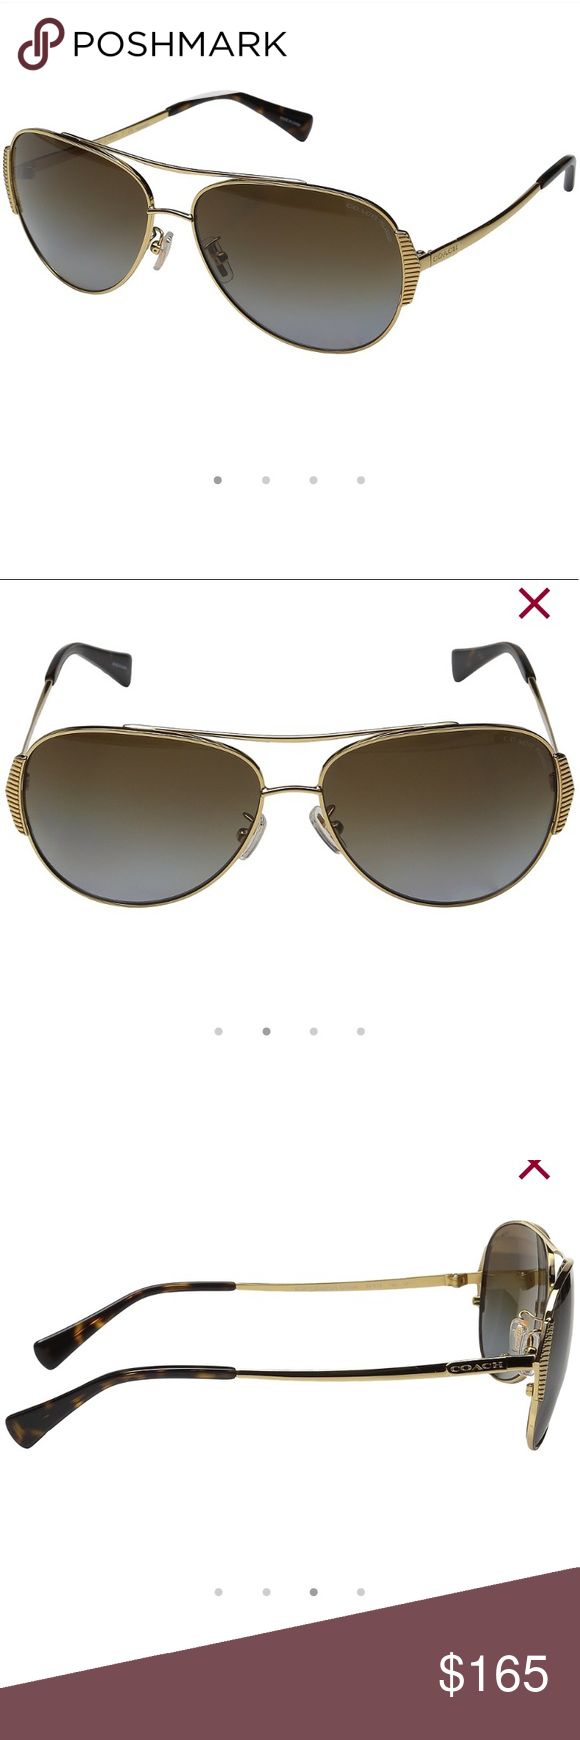 007e21d3bb COACH Polarized Gold tortoise Aviator Sunglasses Brand new in hard black  sunglasses case with cleaning cloth and care booklet. These are polarized!